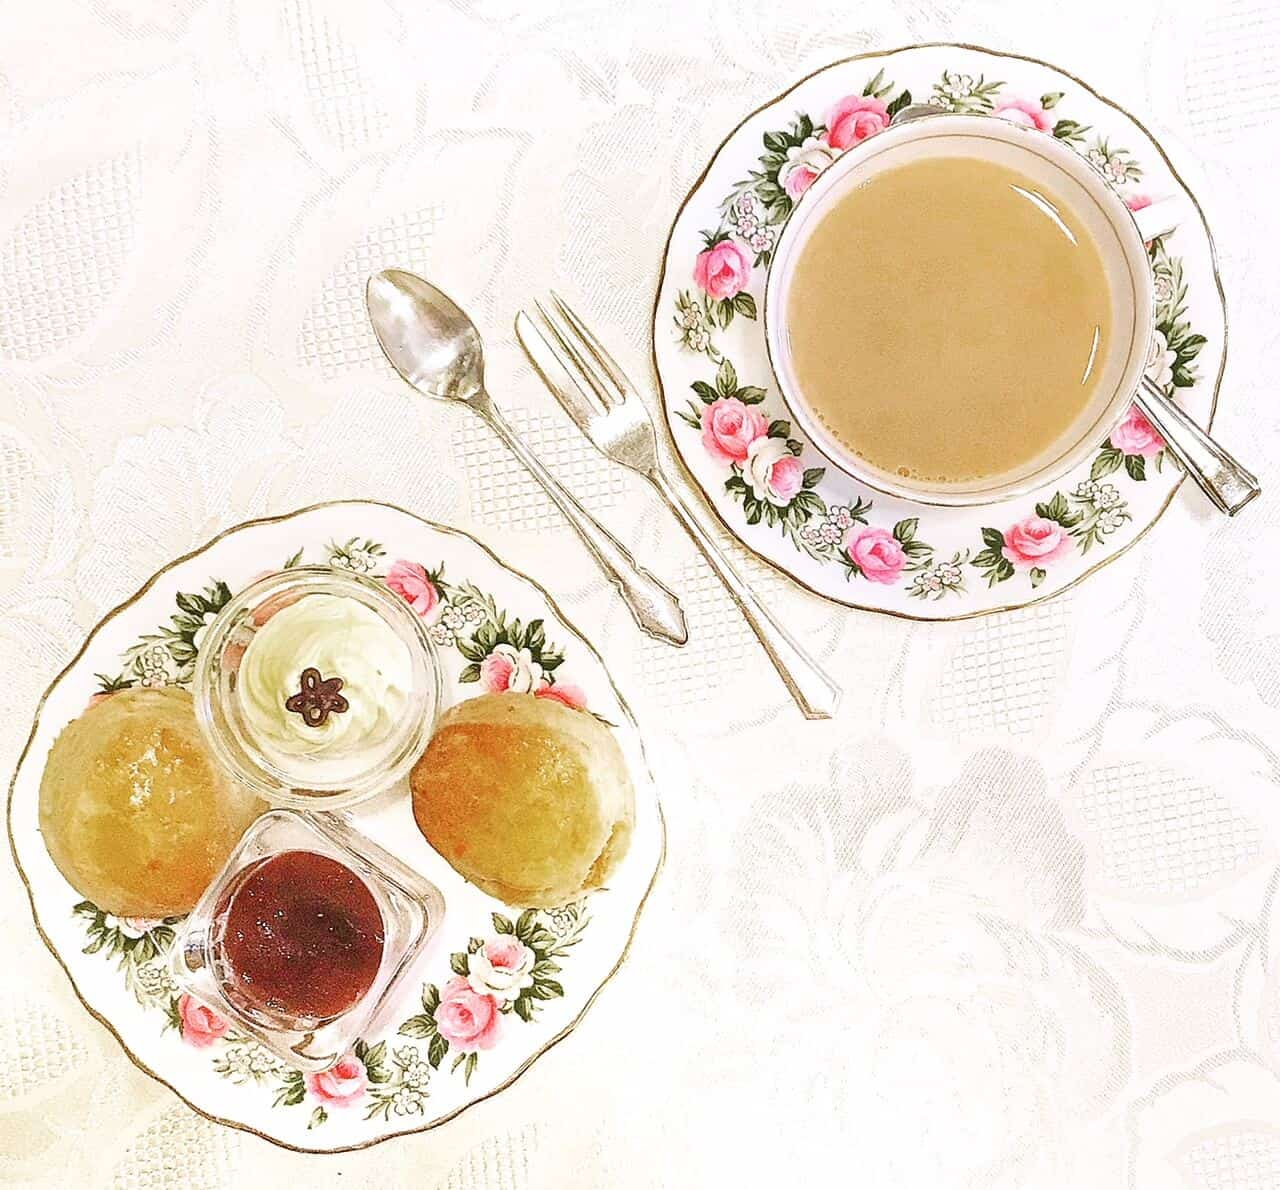 Afternoon Tea at Woburn Coffee House